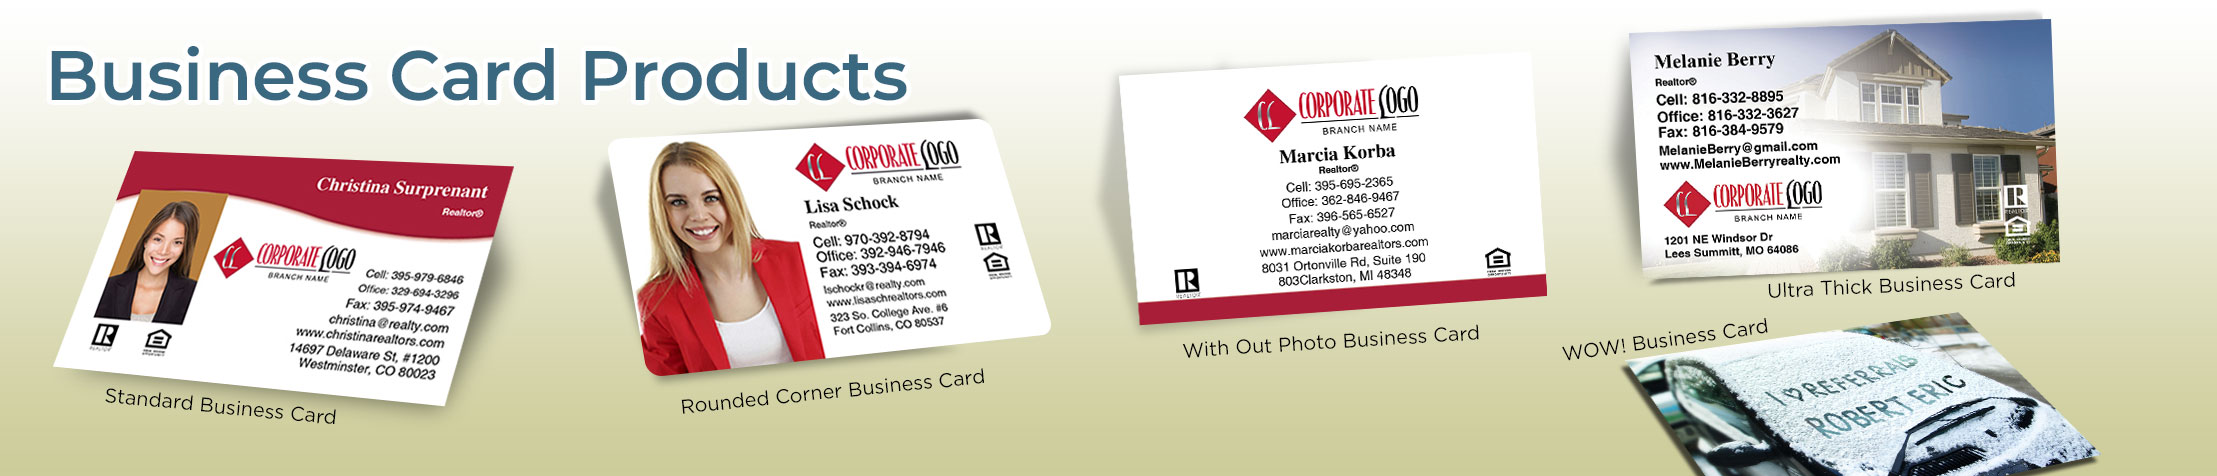 HomeSmart Real Estate  Business Card Products - HomeSmart Real Estate  - Unique, Custom Business Cards Printed on Quality Stock with Creative Designs for Realtors | BestPrintBuy.com